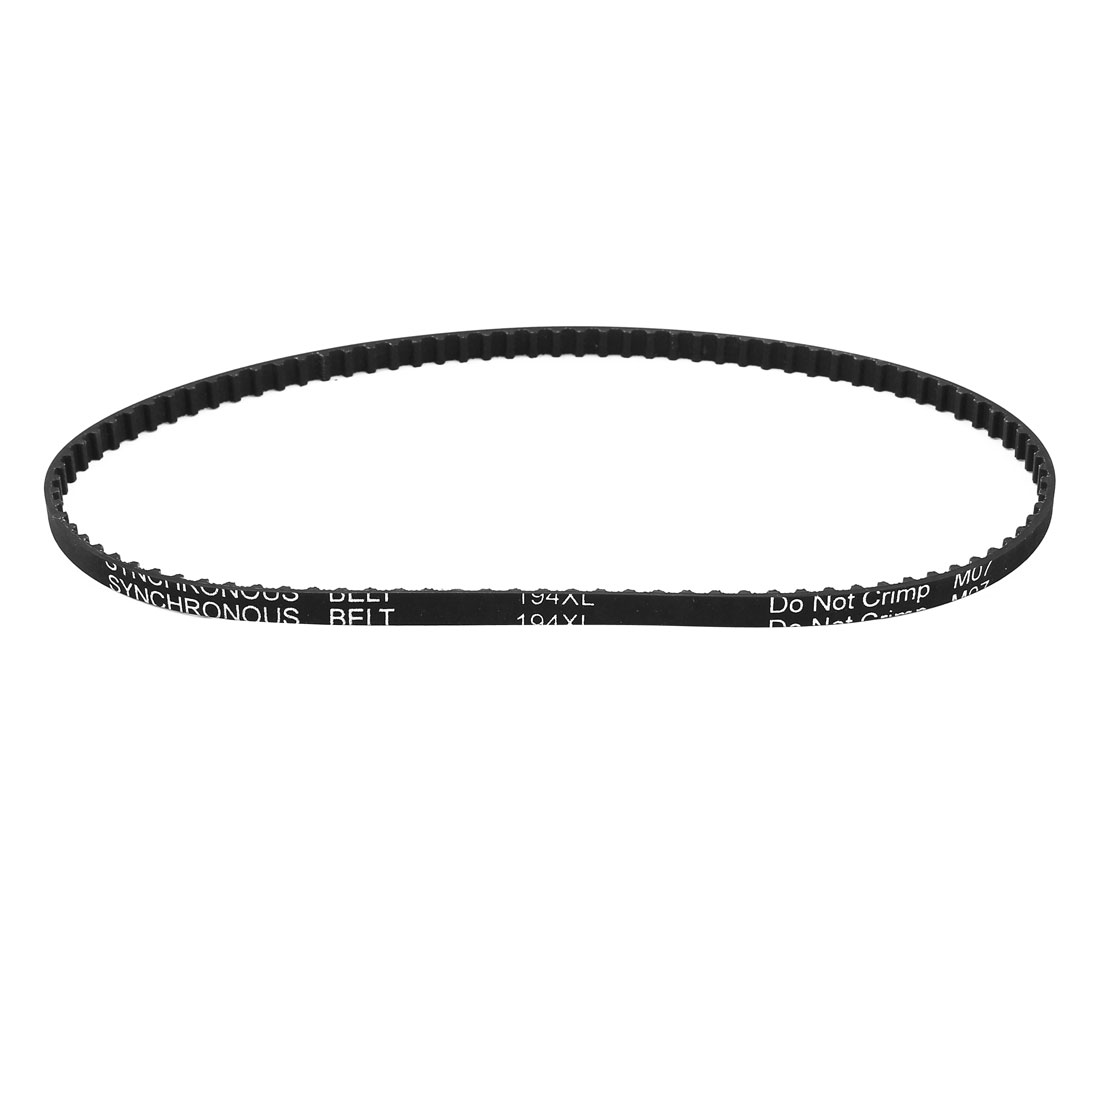 194XL Series 025 97T 5.08mm Pitch 6.4mm Width Industrial Timing Belt